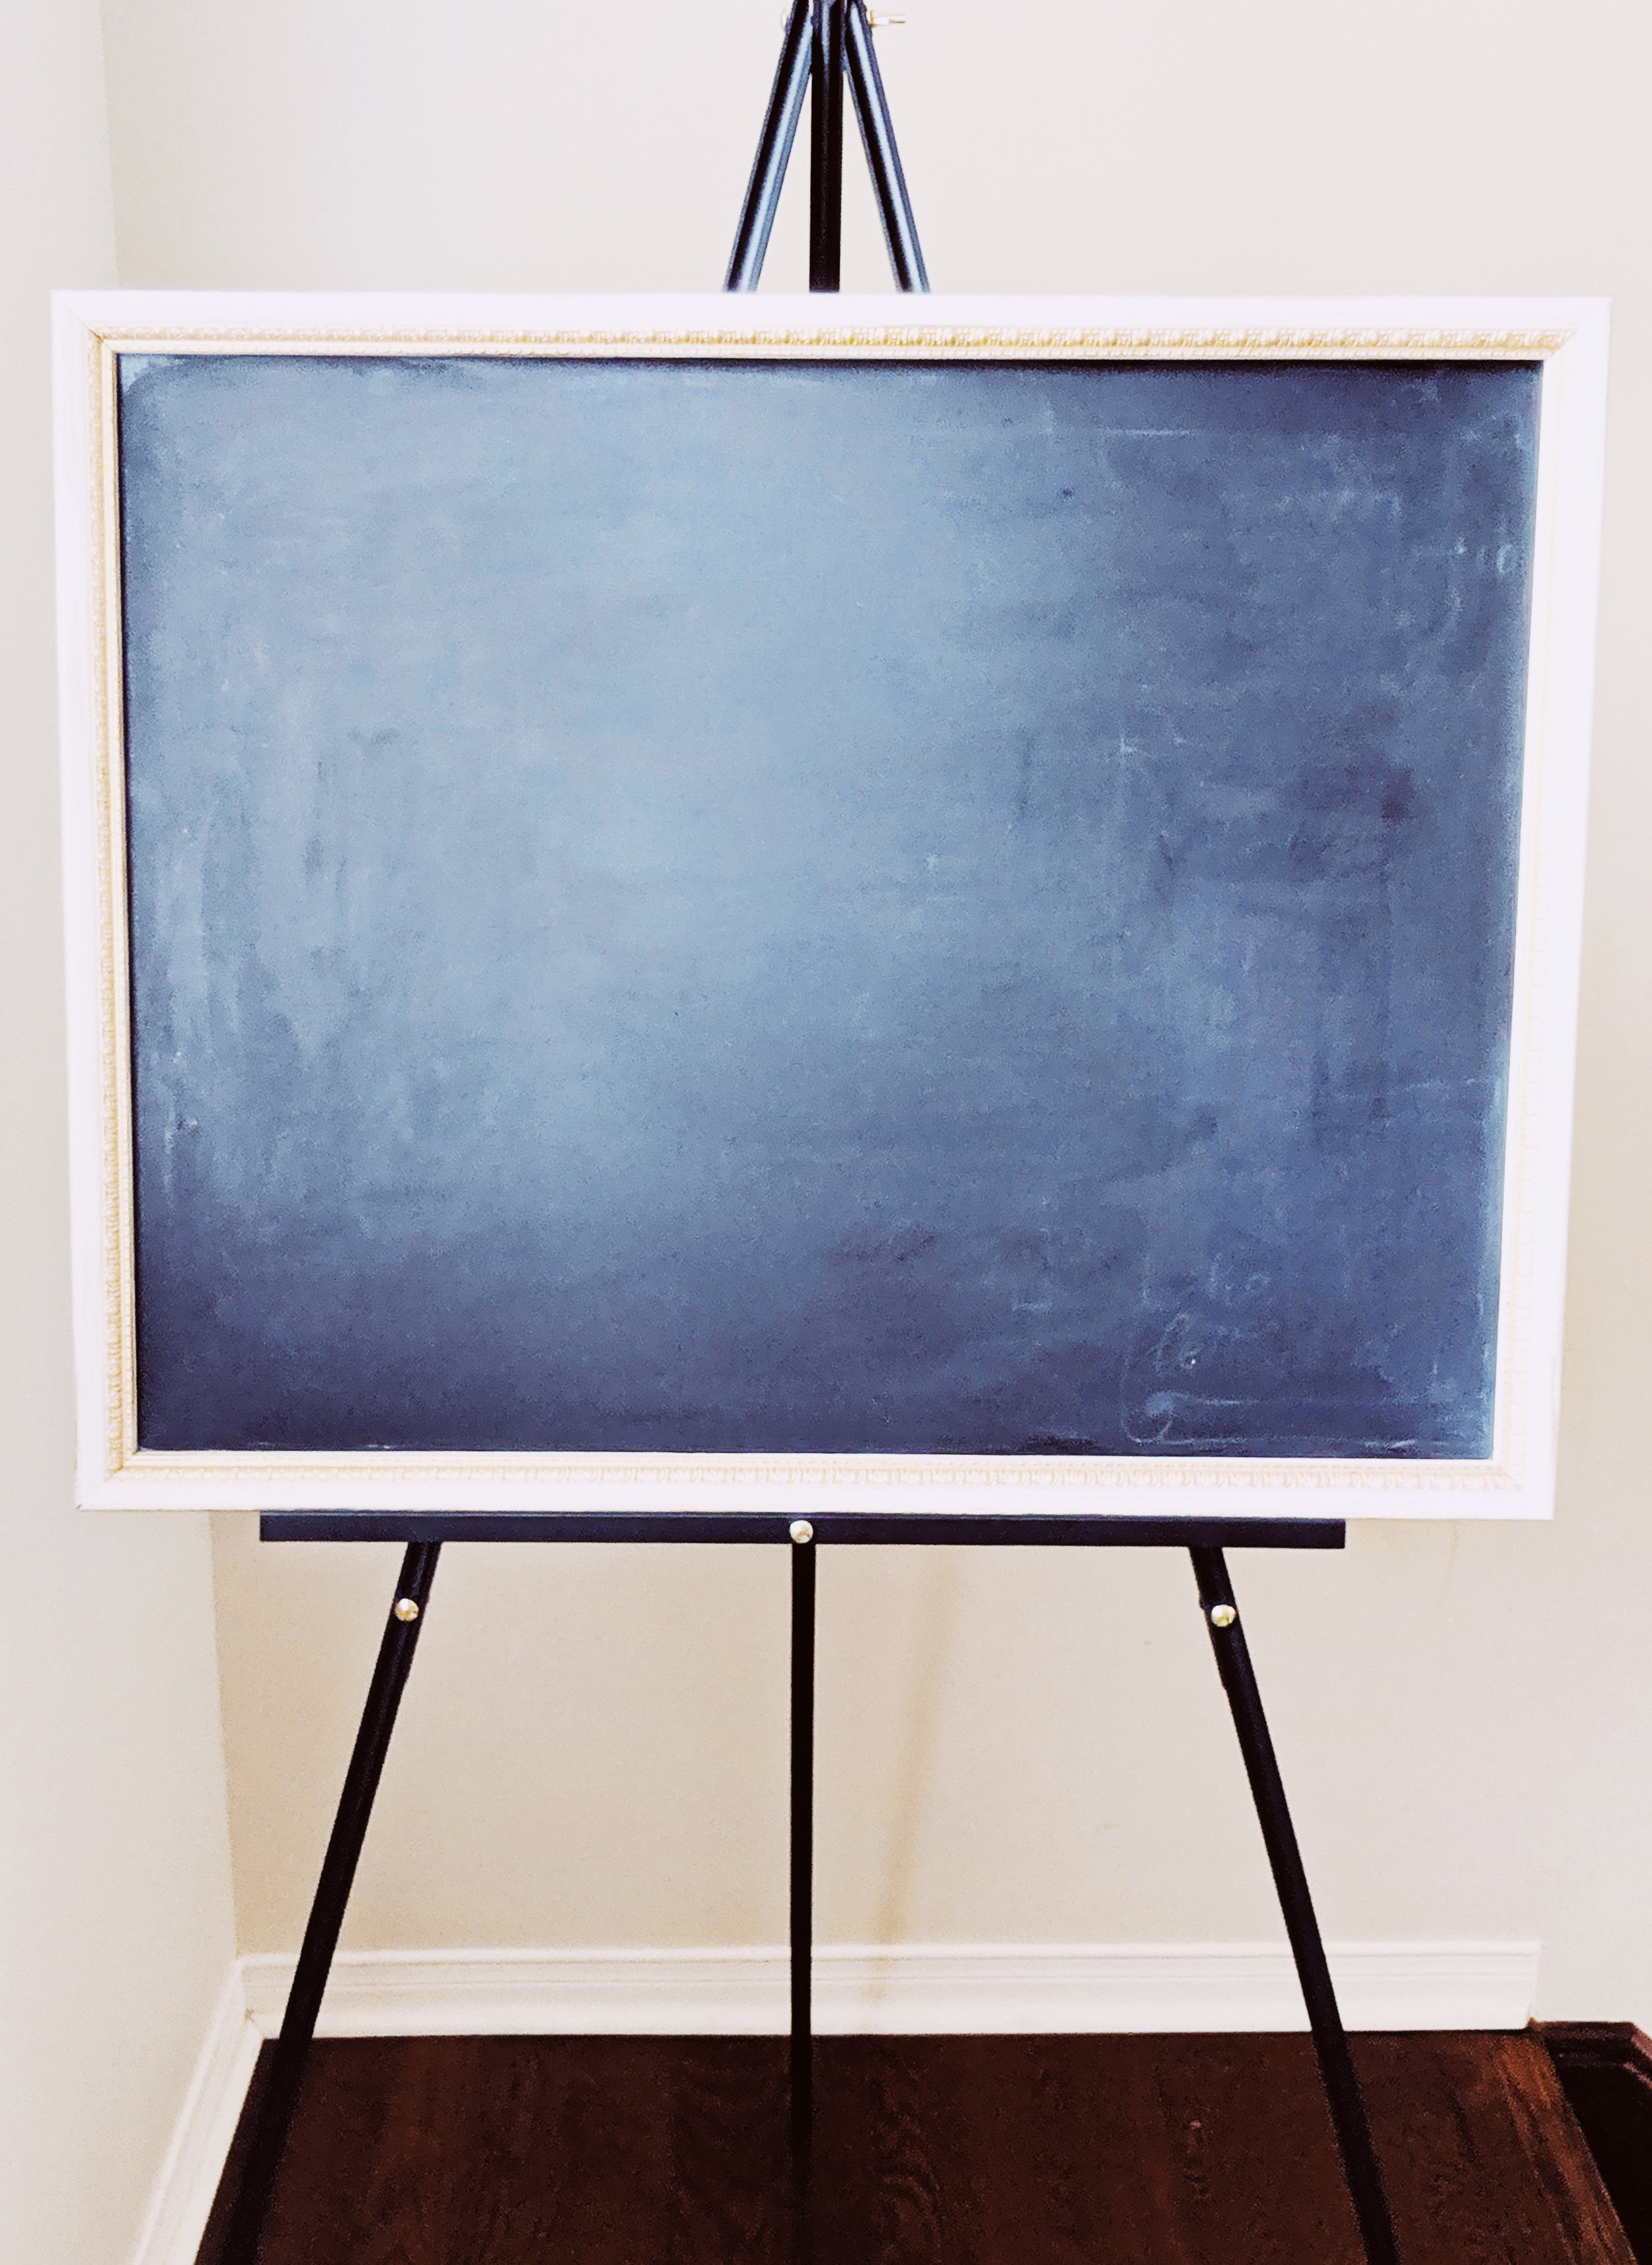 """24"""" x 30"""" Chalkboard Sign - Ideal for Welcome sign, Seating chart for small size events, Menu sign.Rental Fee: $30; Security Deposit: $60"""